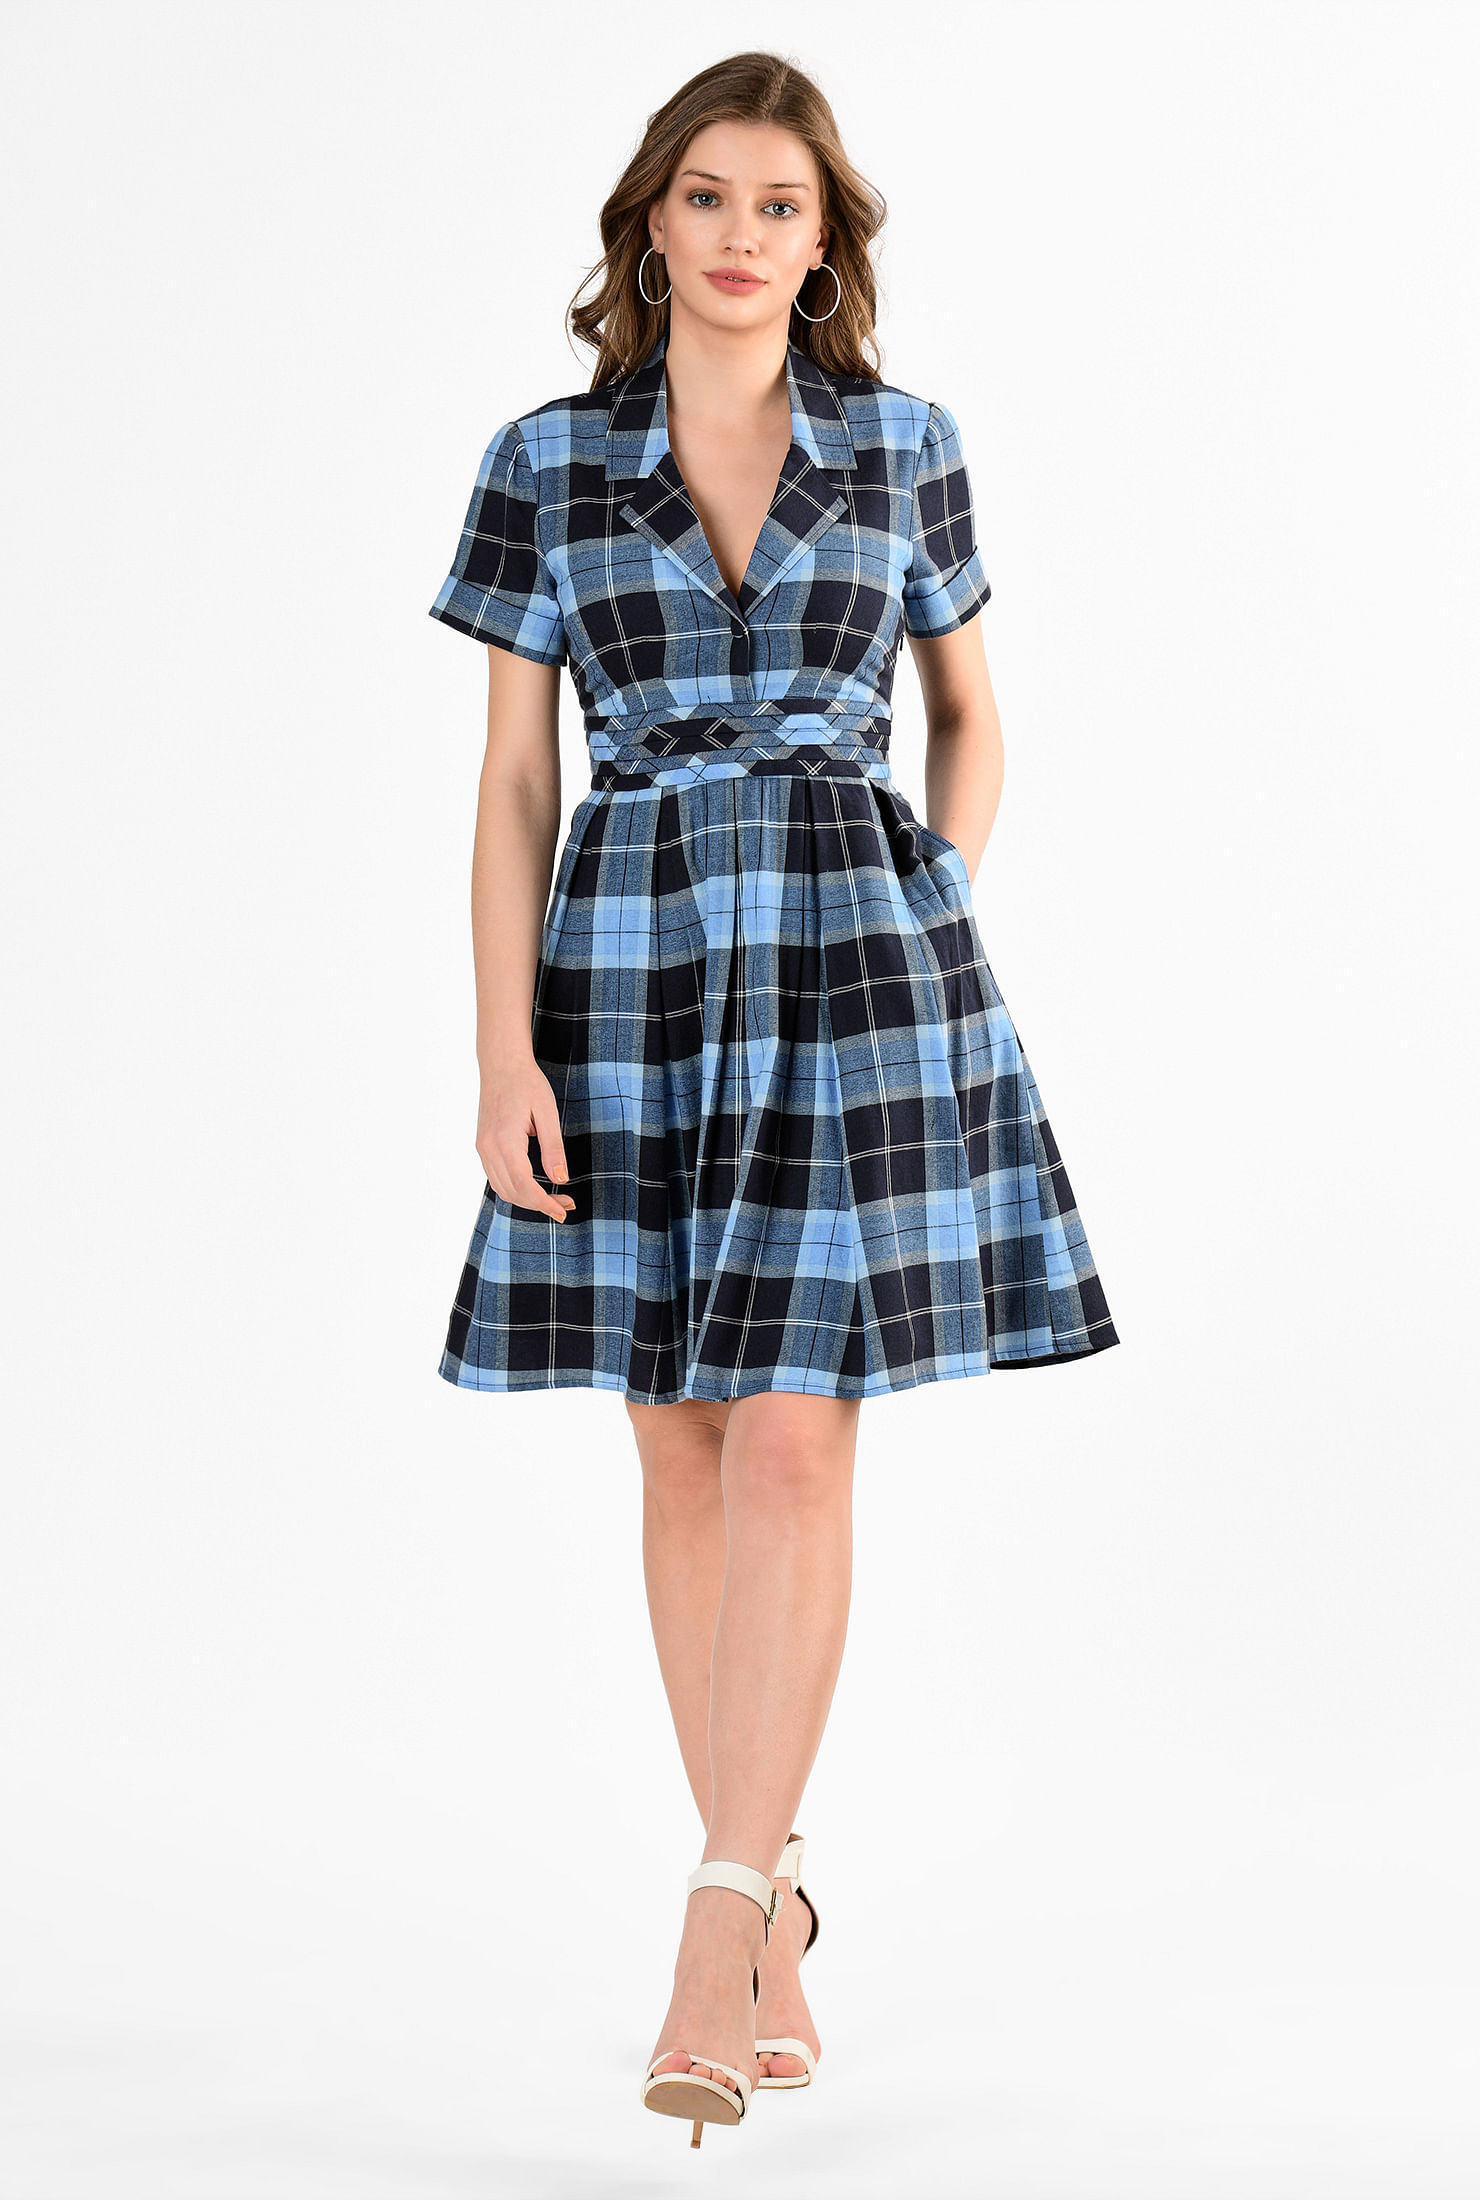 3679a95b171 ... Summer cotton plaid notch collar dress. zapelle.